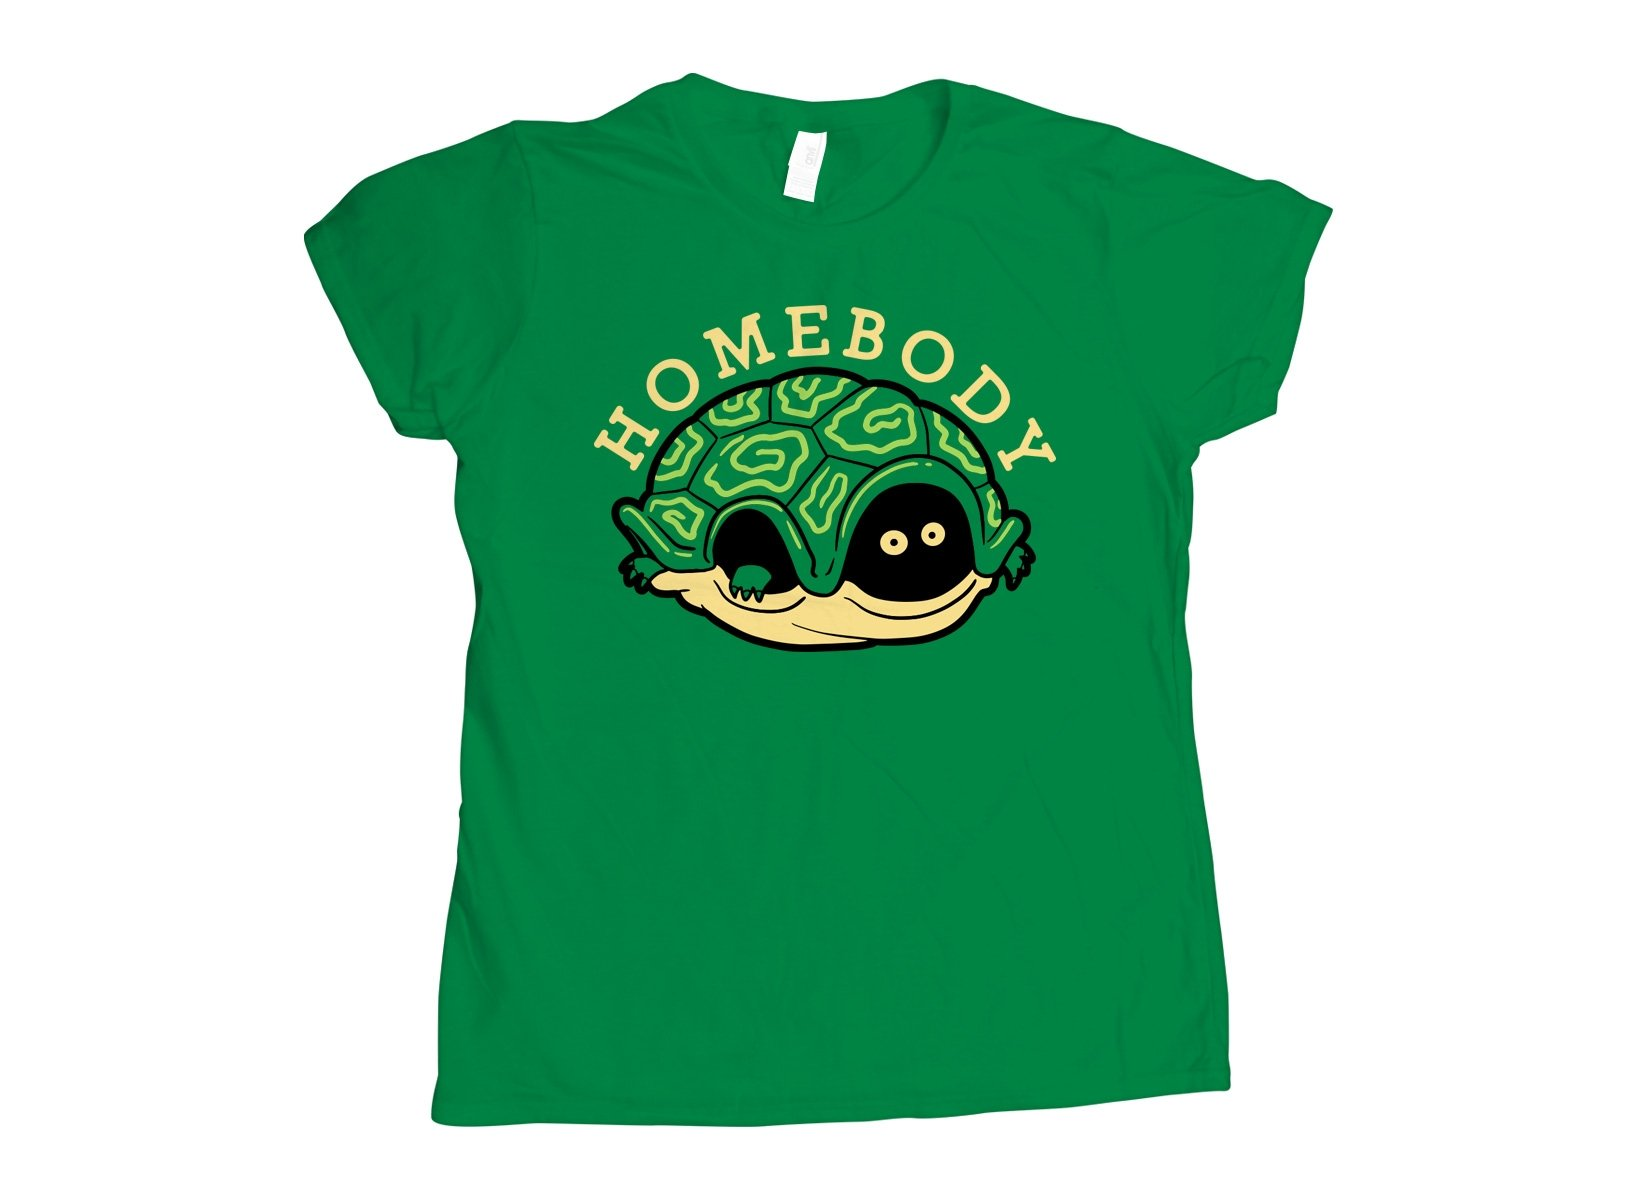 Homebody on Womens T-Shirt